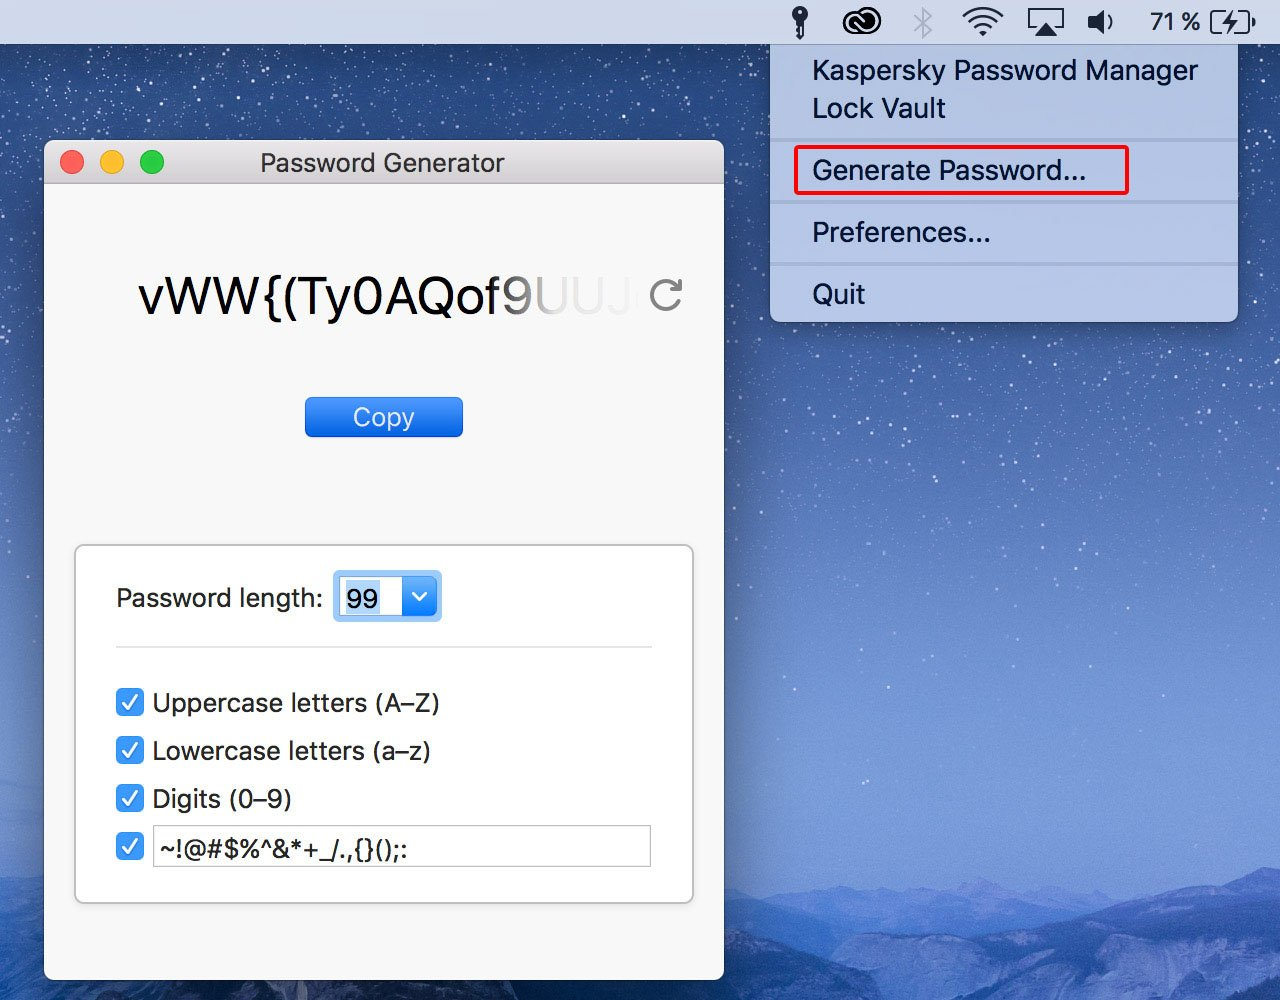 Kaspersky Password Manager: Secure password generator